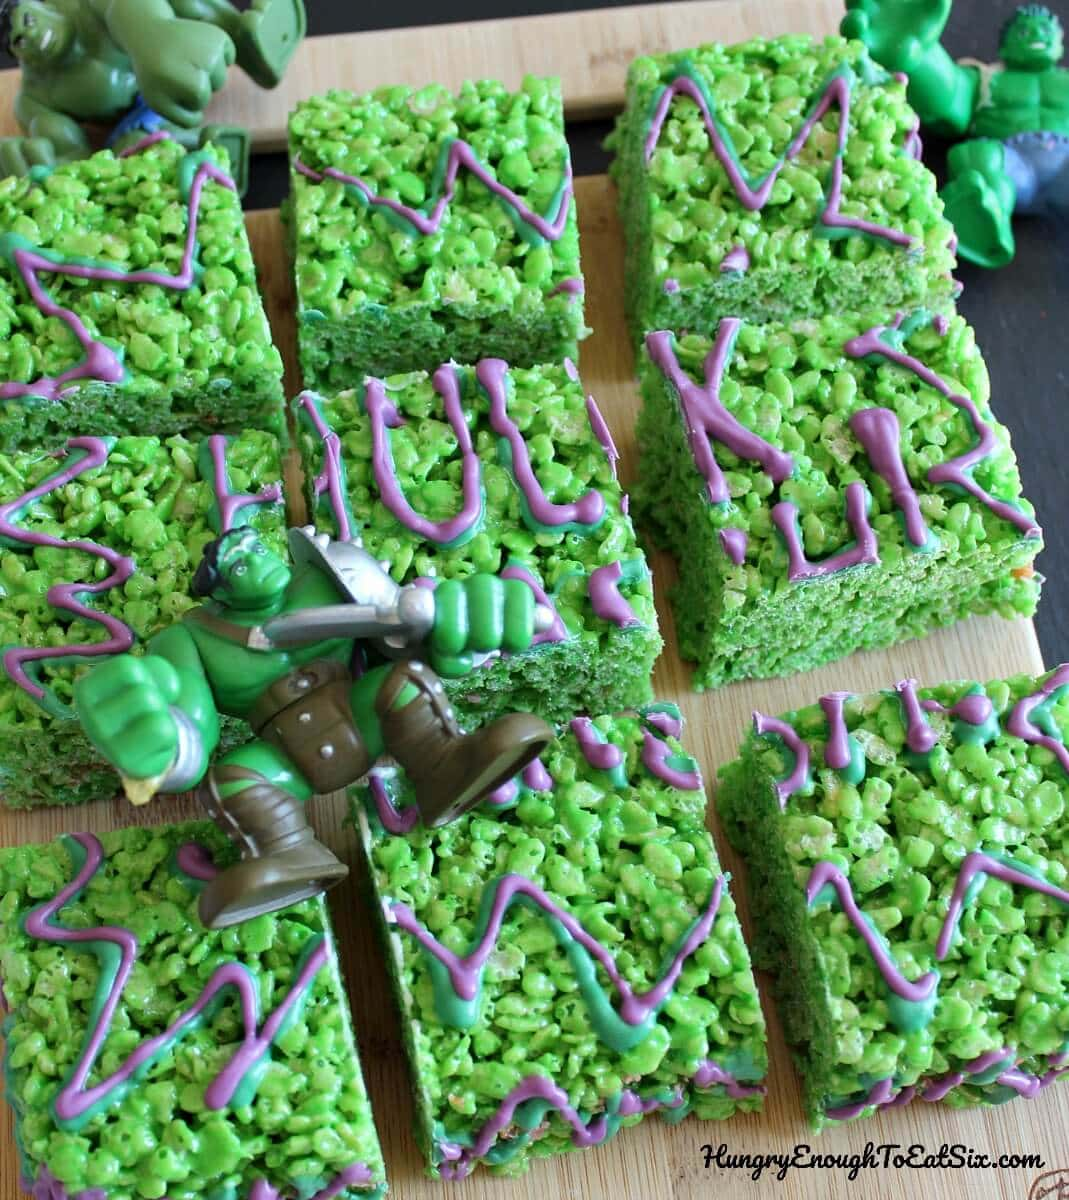 Green crispy marshmallow treats cut into 9 squares with Hulk toy laying on top